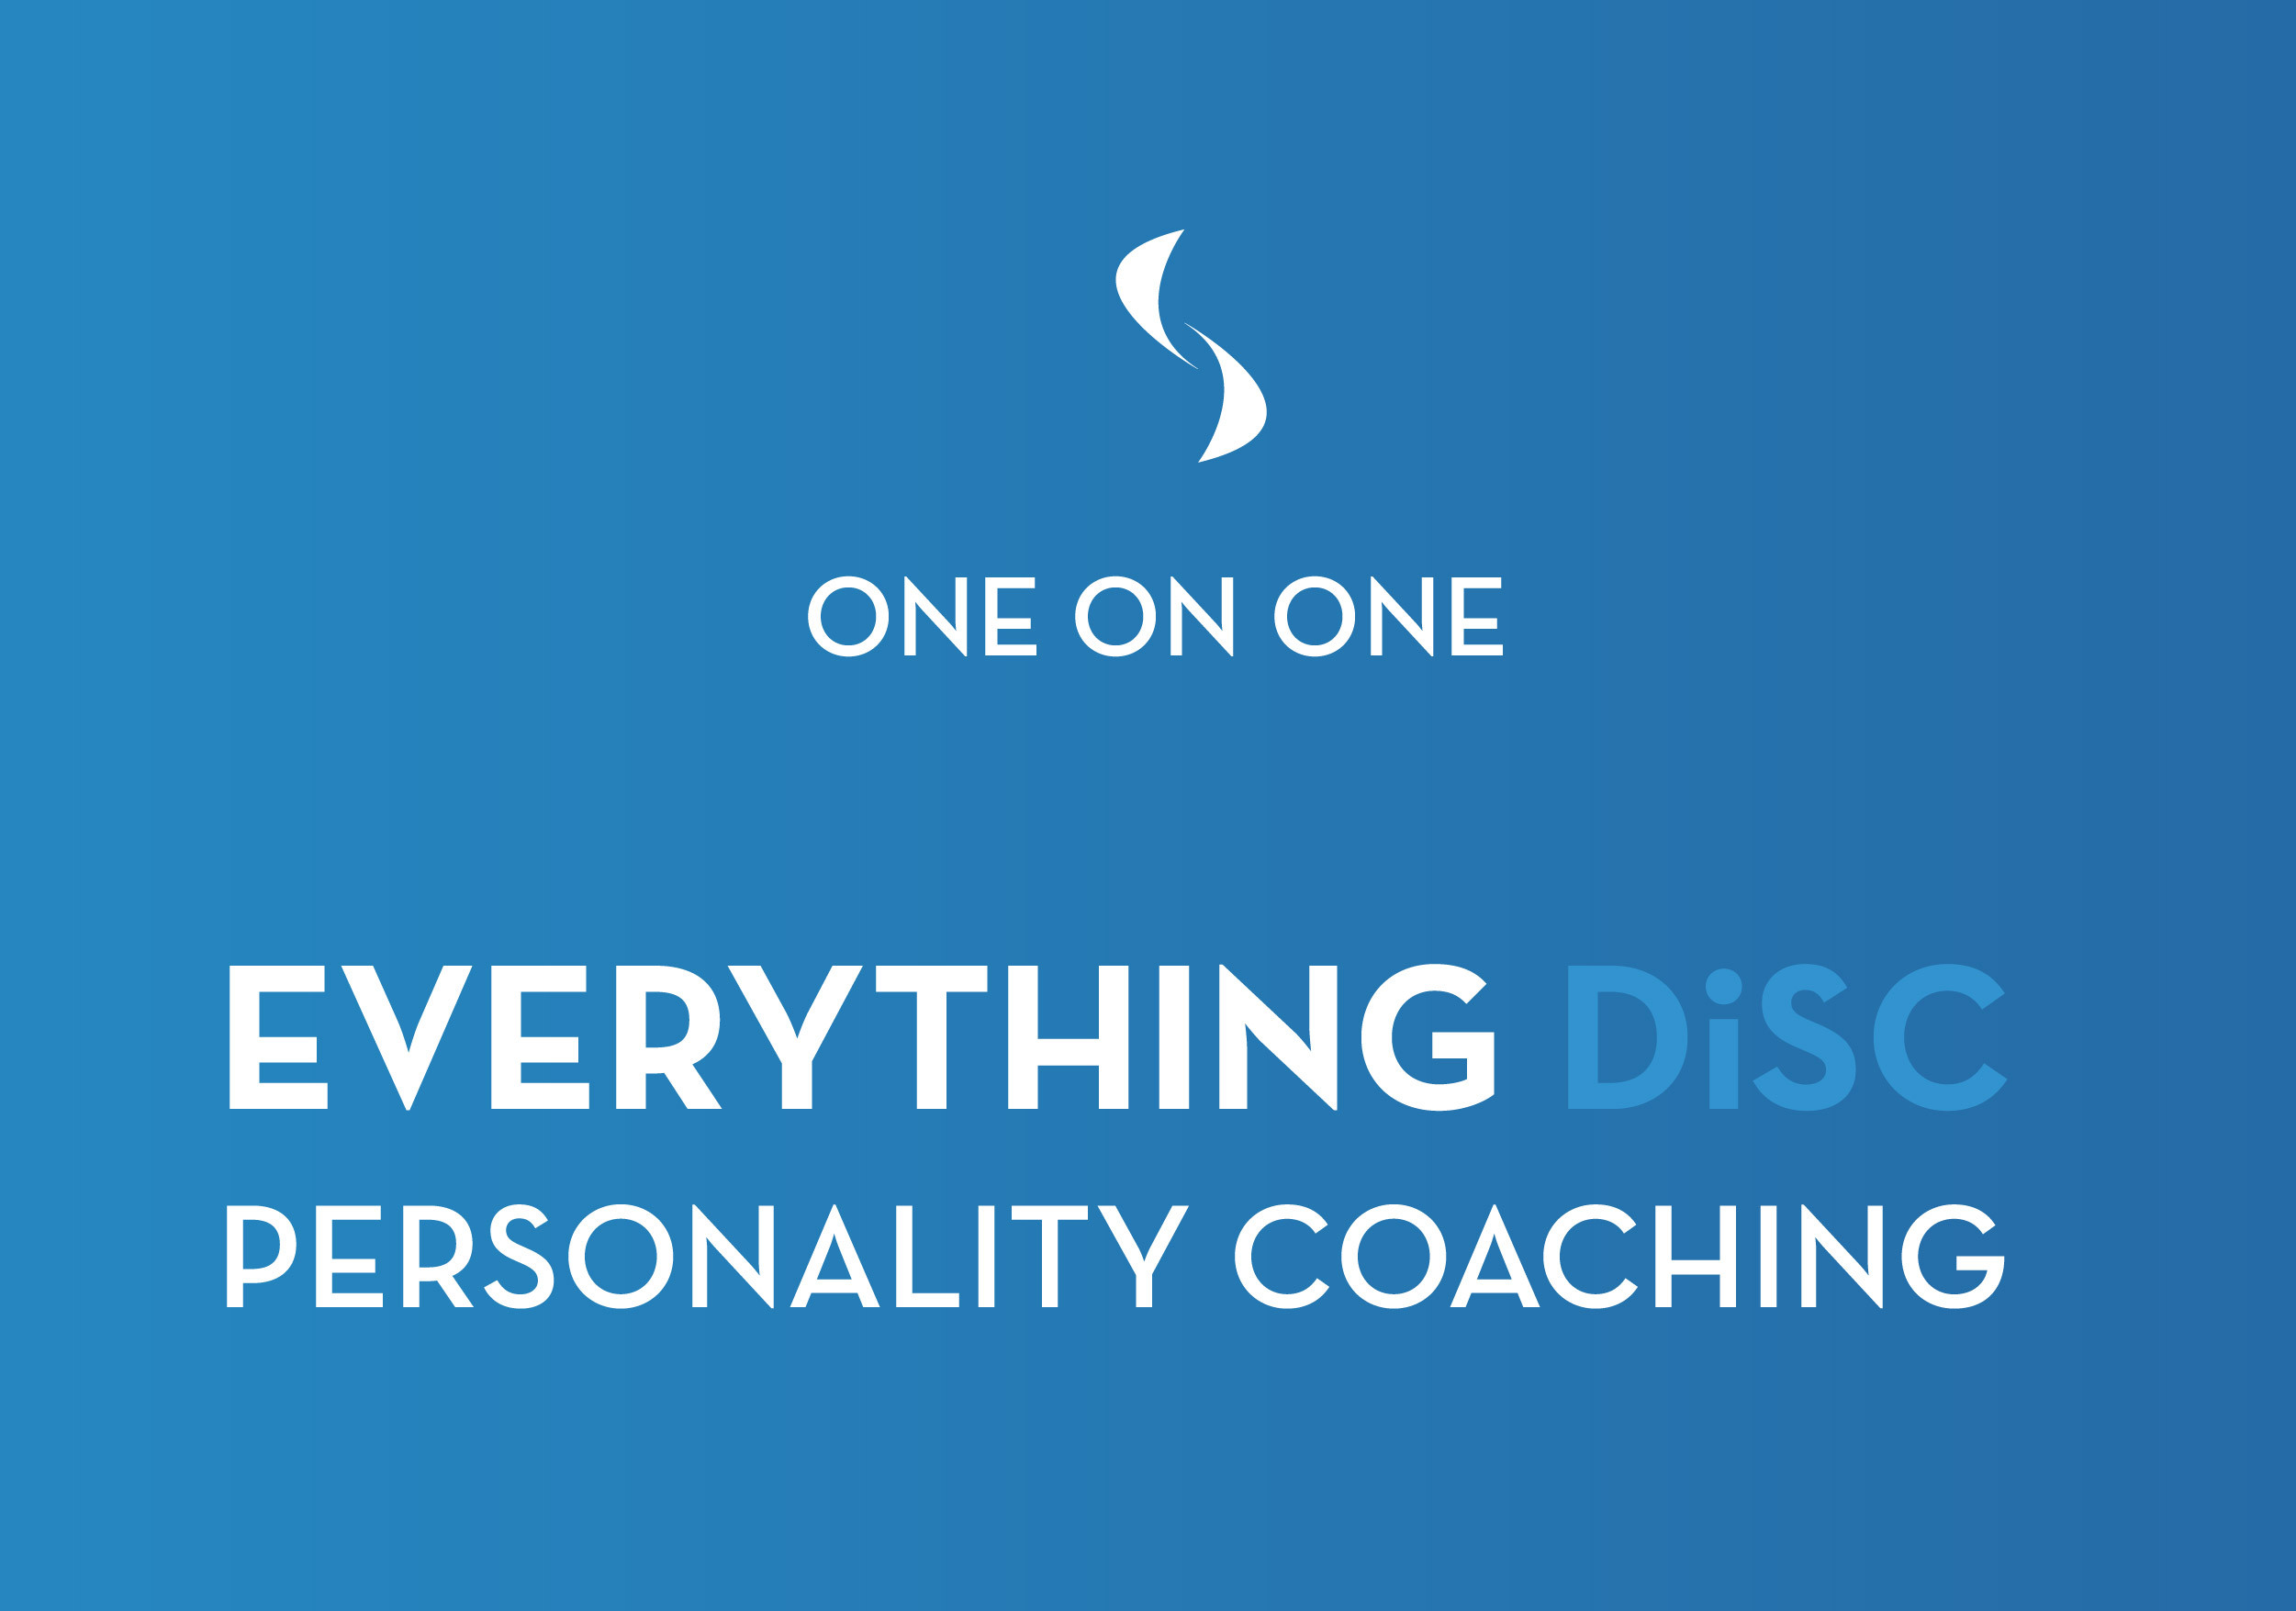 Everything DiSC personality coaching